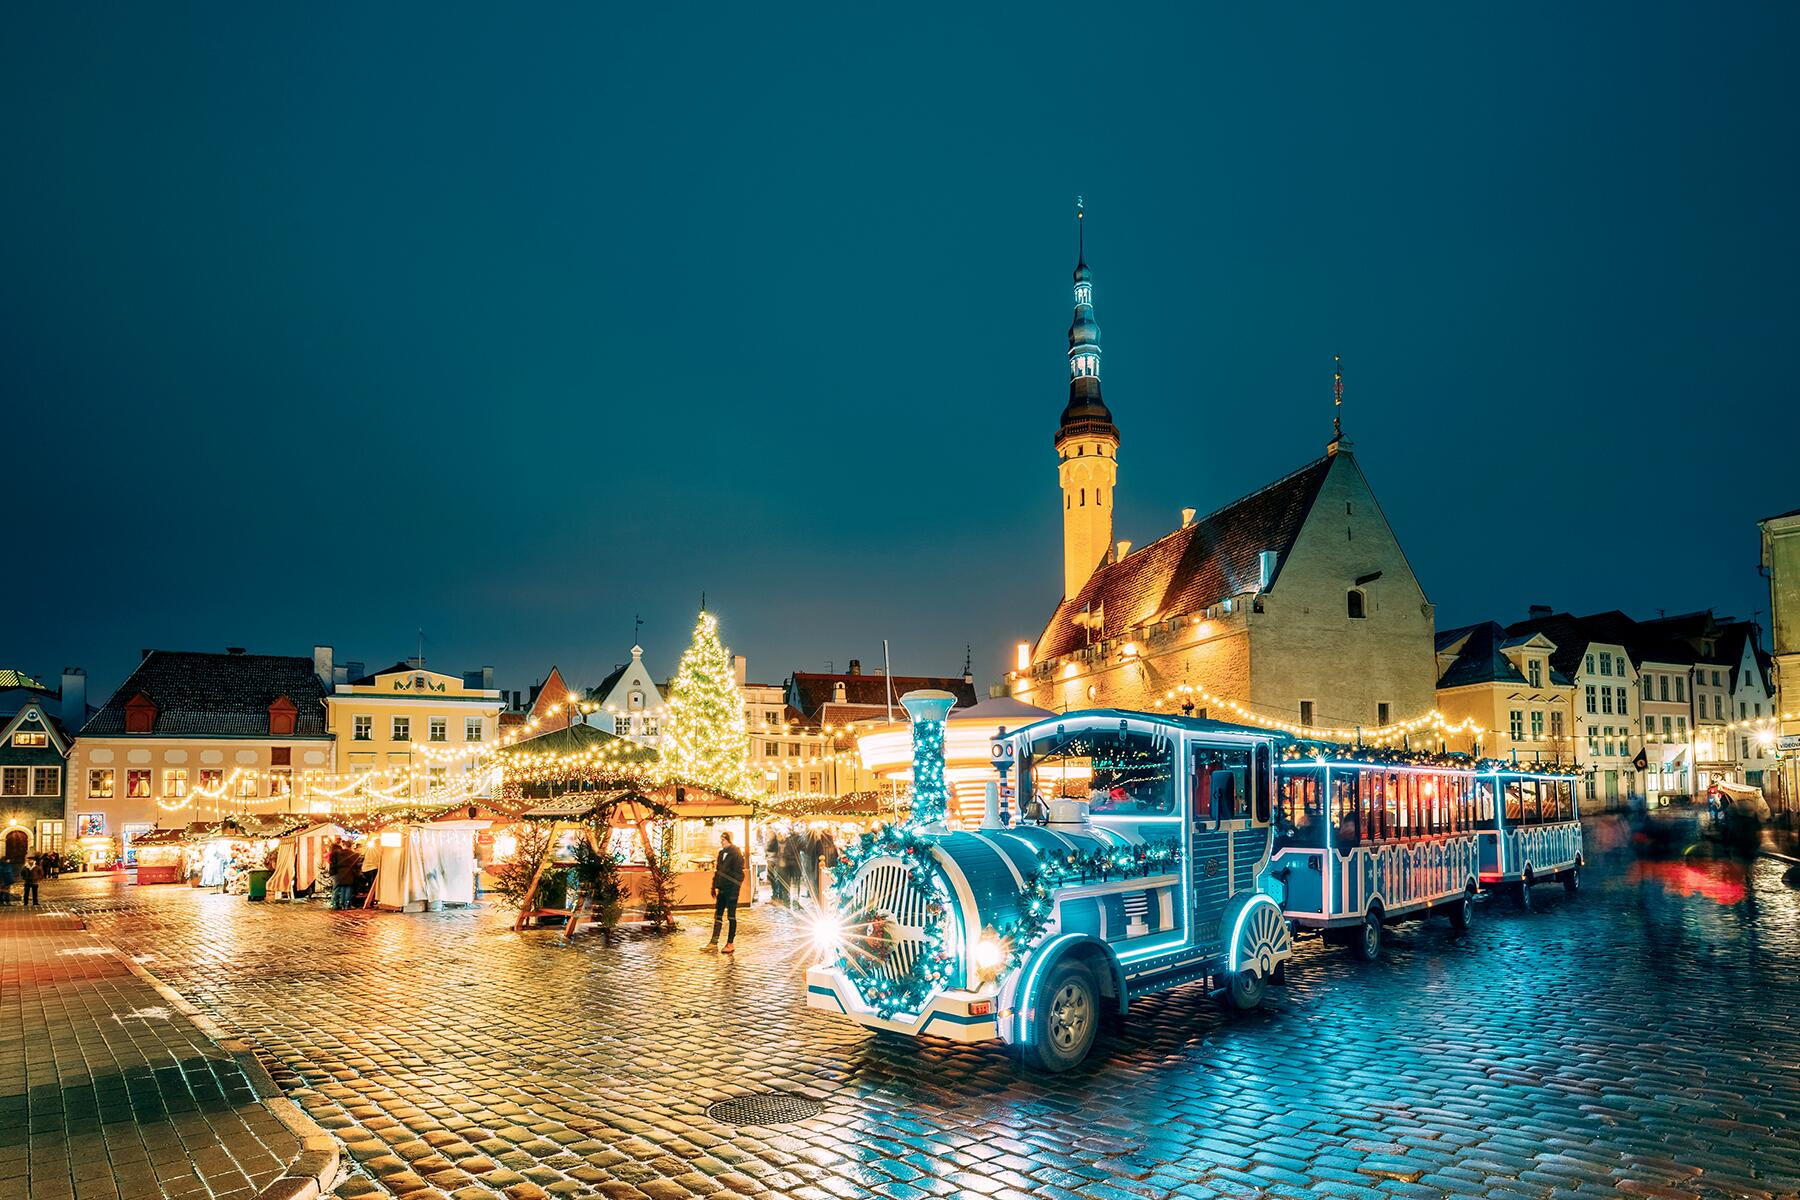 Who Would Have Guessed These Towns Had Christmas Markets?